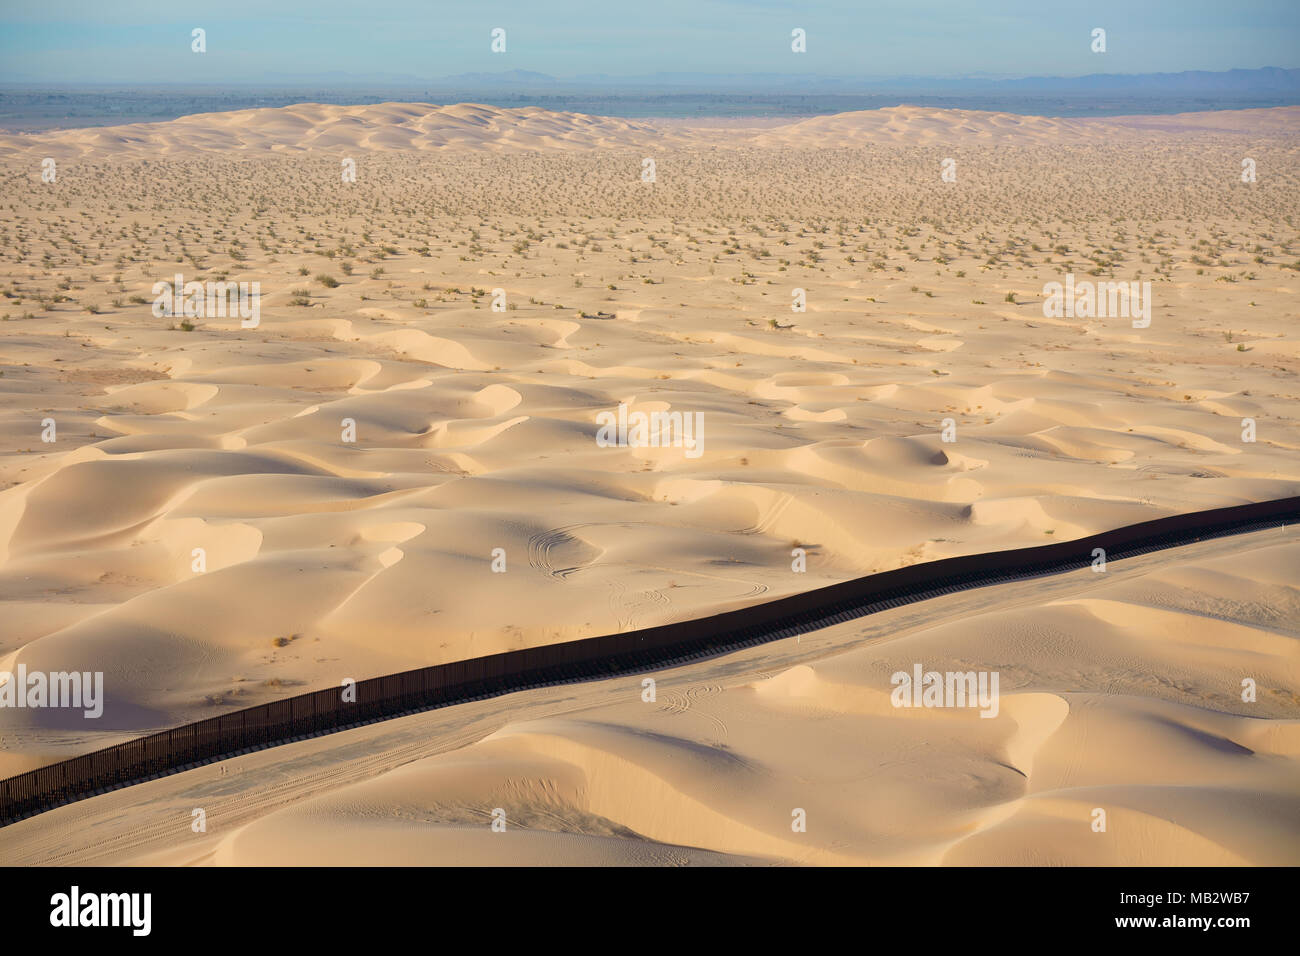 INTERNATIONAL BORDER: MEXICO - UNITED STATES (aerial view). Algodones Dunes in the Sonoran Desert, Baja California, Mexico (behind the wall). - Stock Image